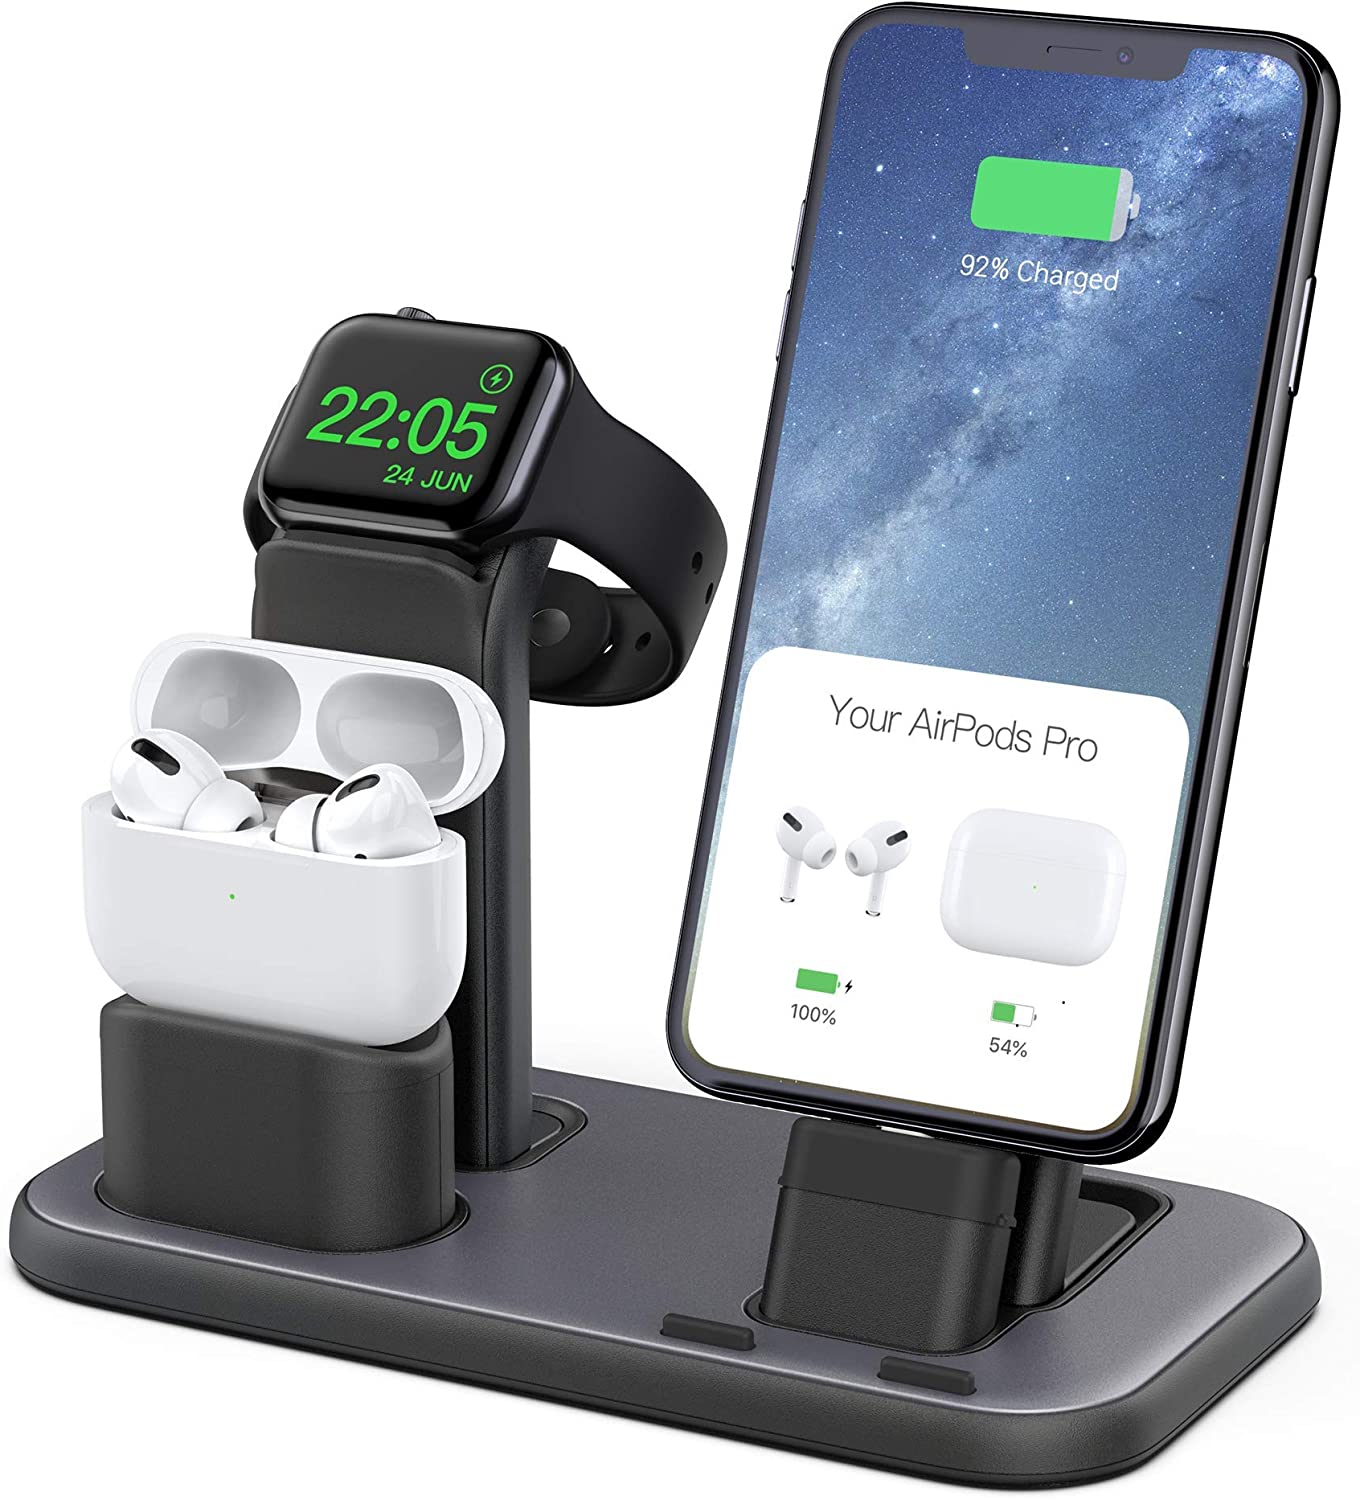 Beacoo 3 in 1 Charging Stand Compatible with iWatch Series 6/5/4/3/2/1, AirPods Pro 1/2 and iPhone 11/Pro/Xs/X Max/XR/X/8/8Plus/7/7 Plus /6S /6S Plus(Charger & Cables Required)